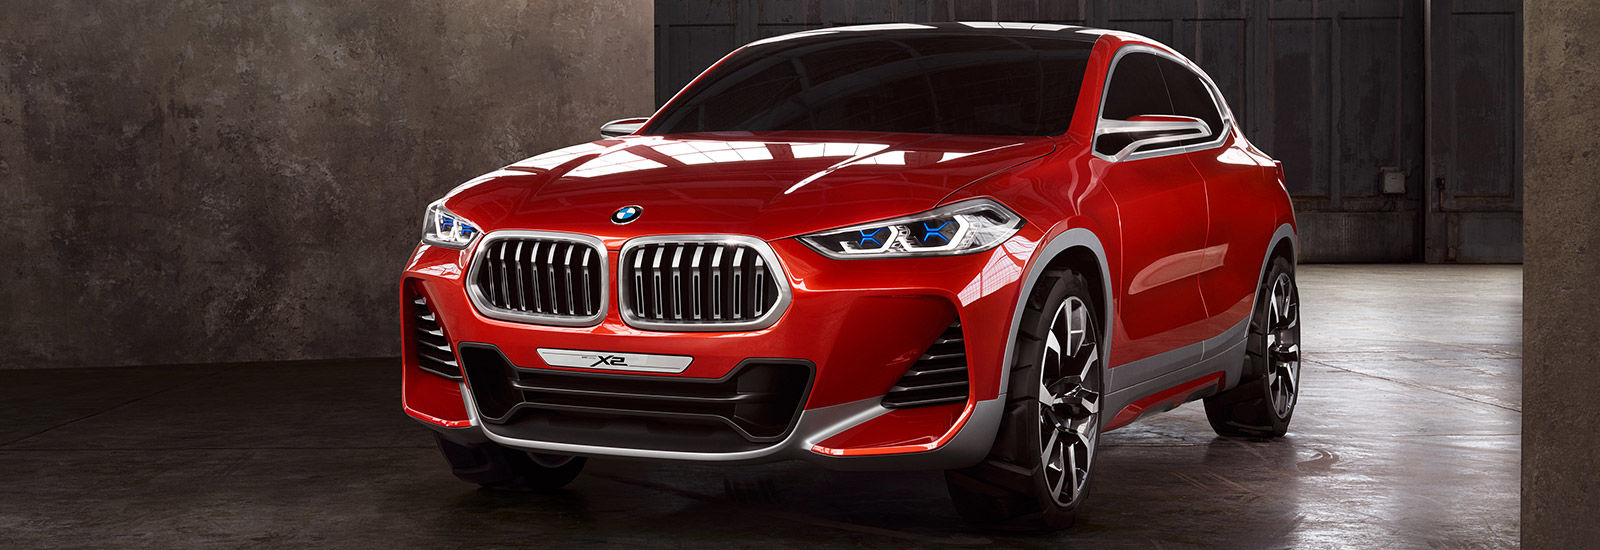 new bmw x2 suv price specs and release date carwow. Black Bedroom Furniture Sets. Home Design Ideas